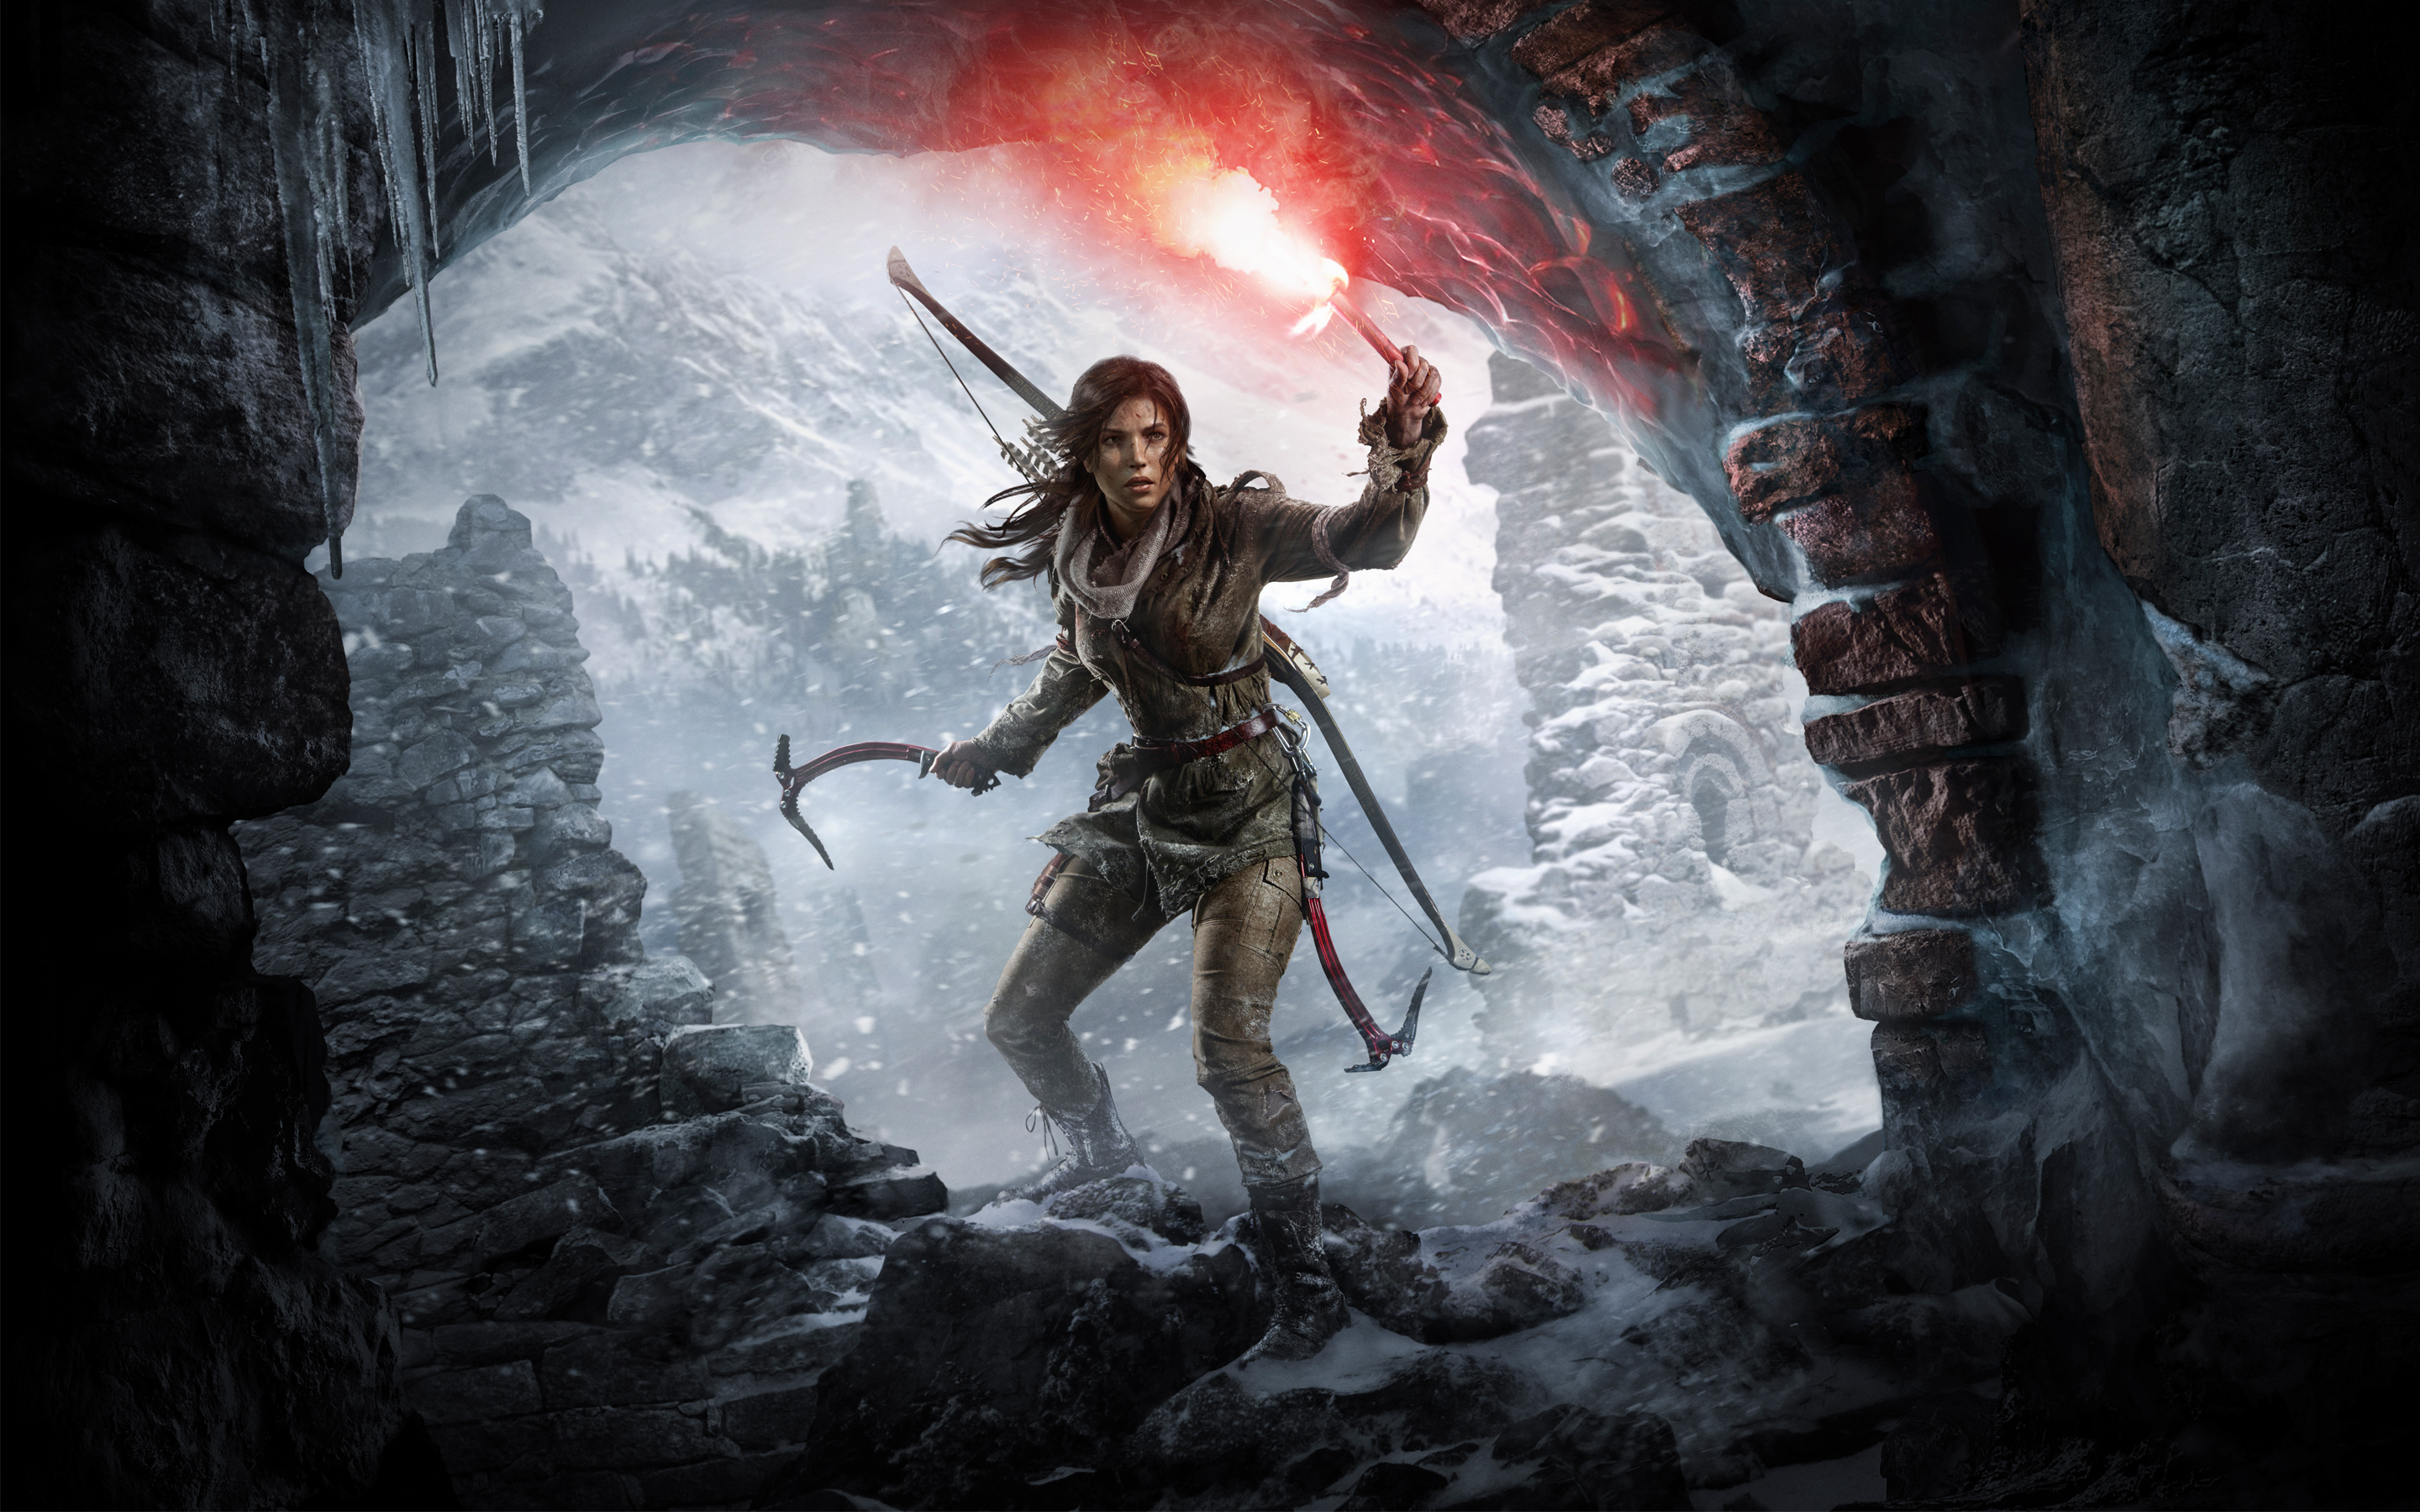 HD Wallpapers 2015 Rise Of The Tomb Raider